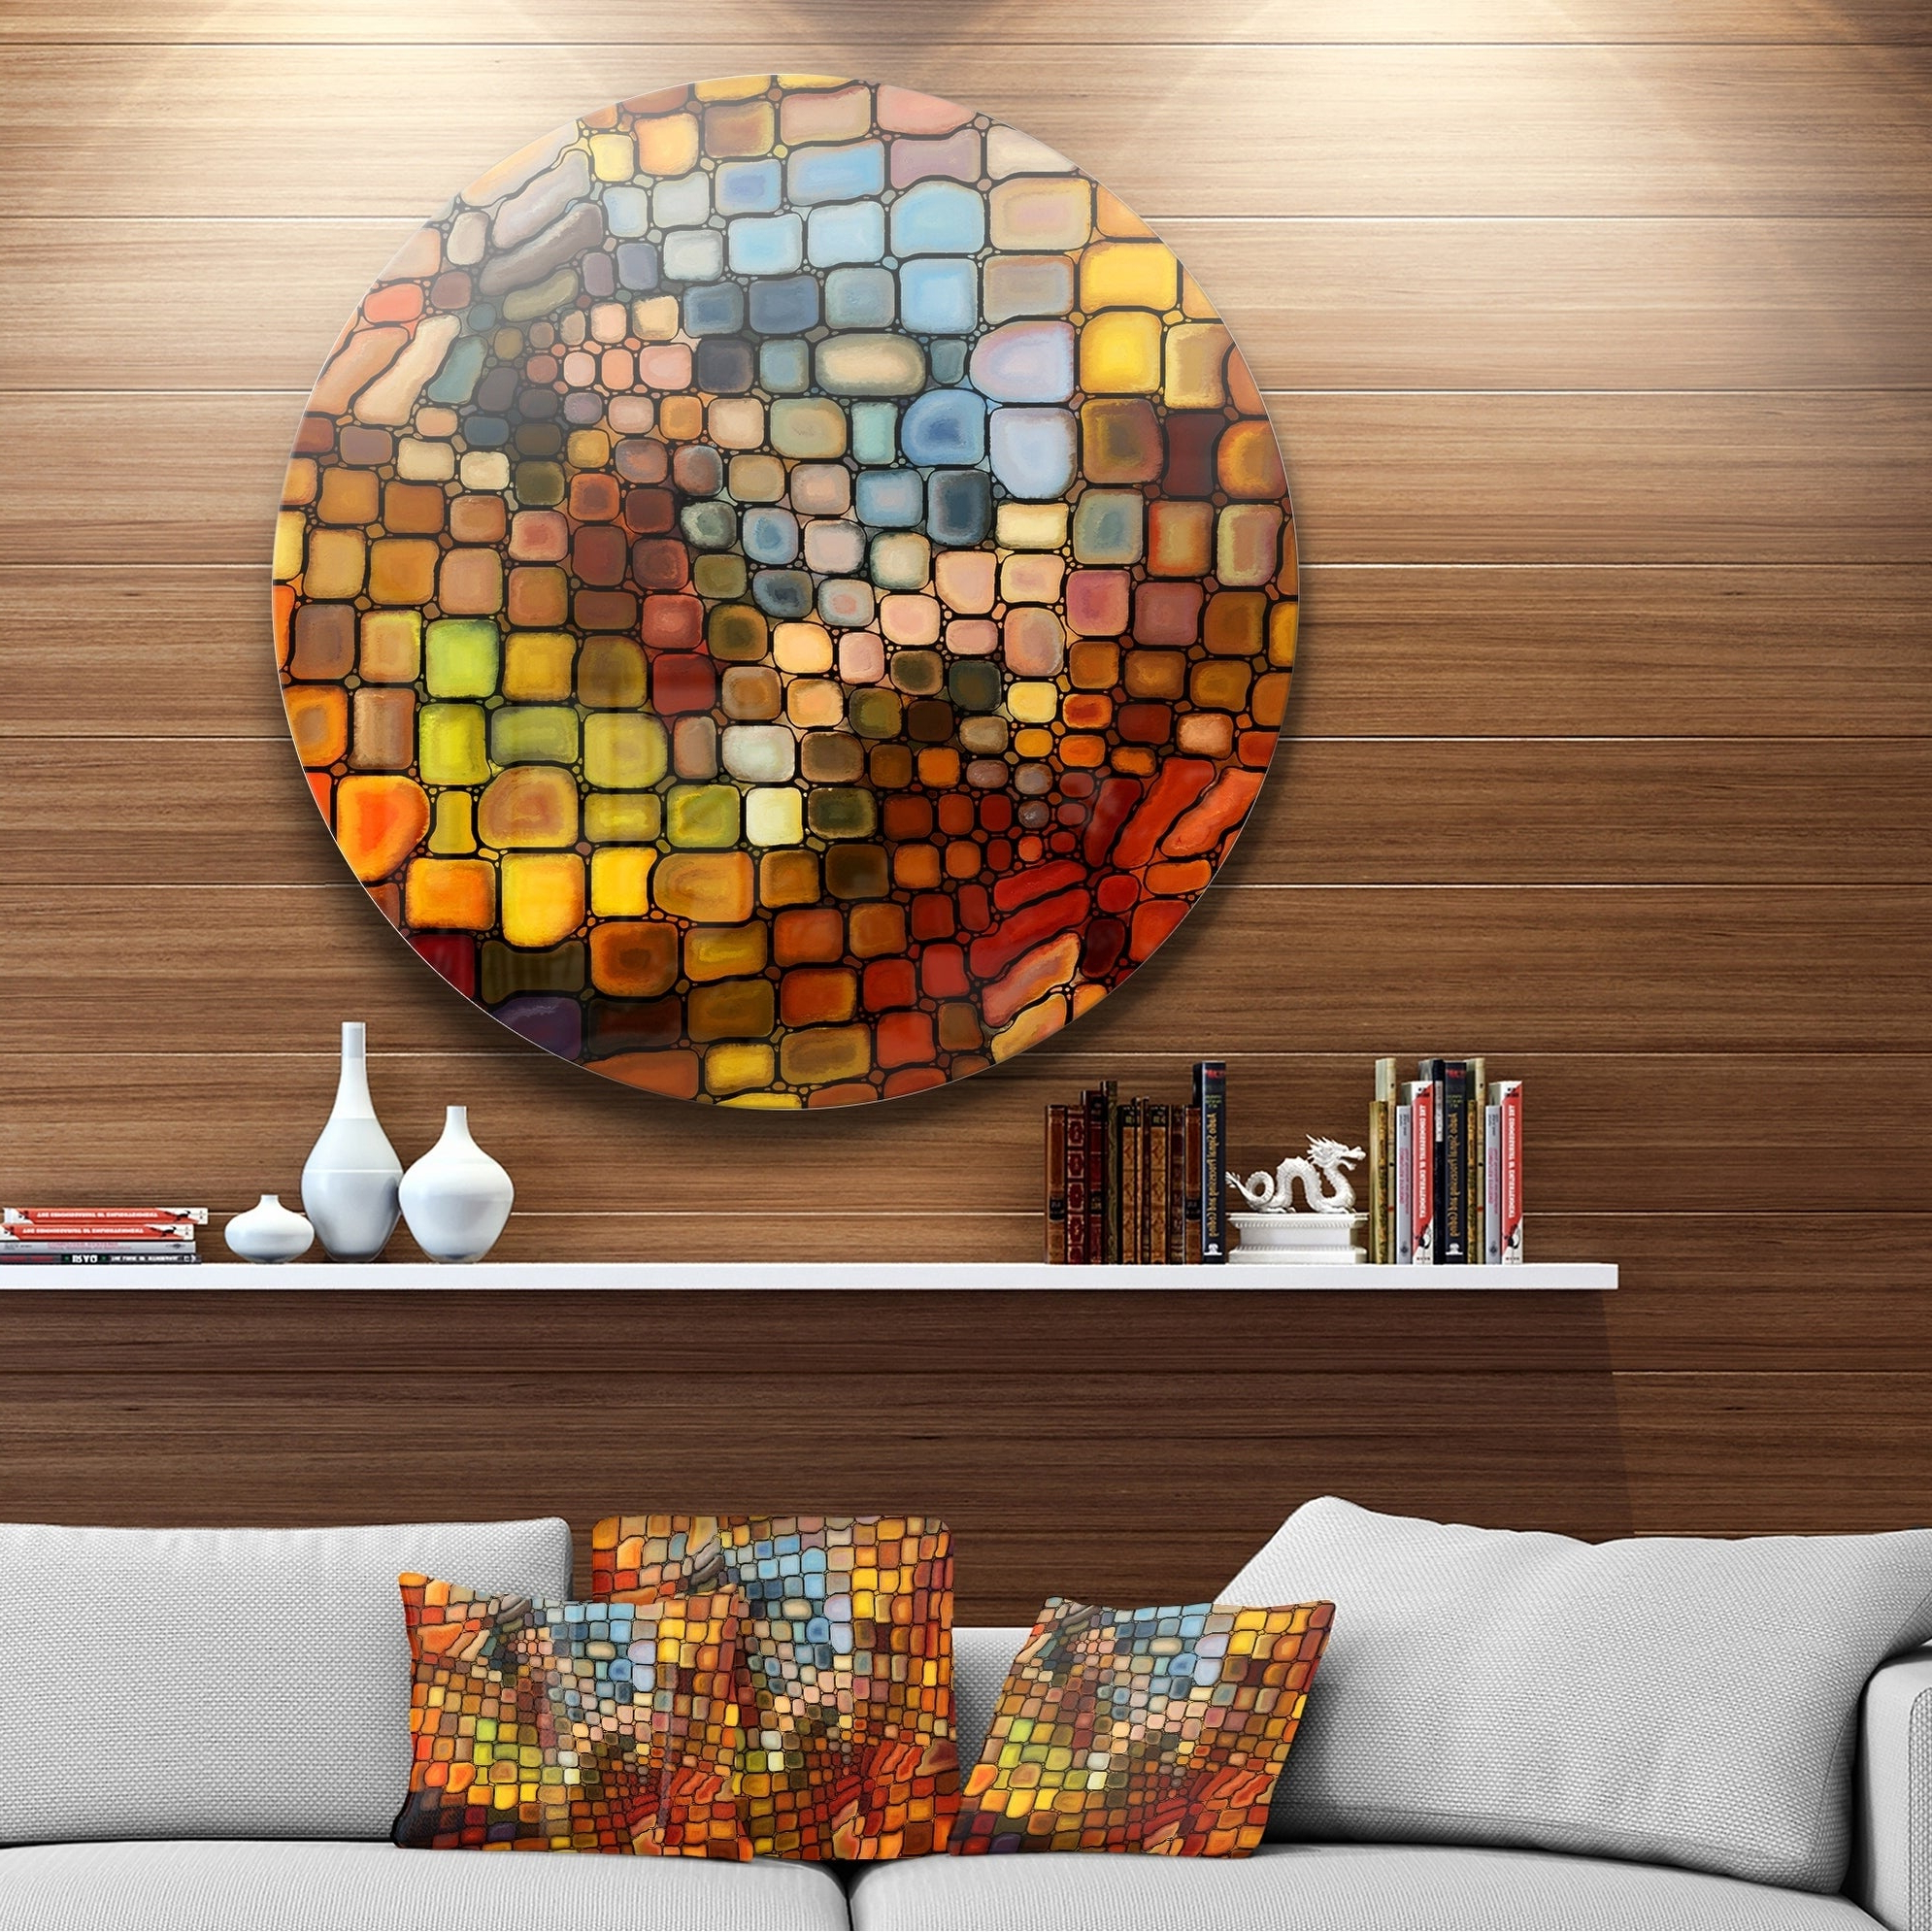 Shop Designart 'dreaming Of Stained Glass' Abstract Glossy Metal Throughout 2020 Abstract Bar And Panel Wall Decor (Gallery 12 of 20)